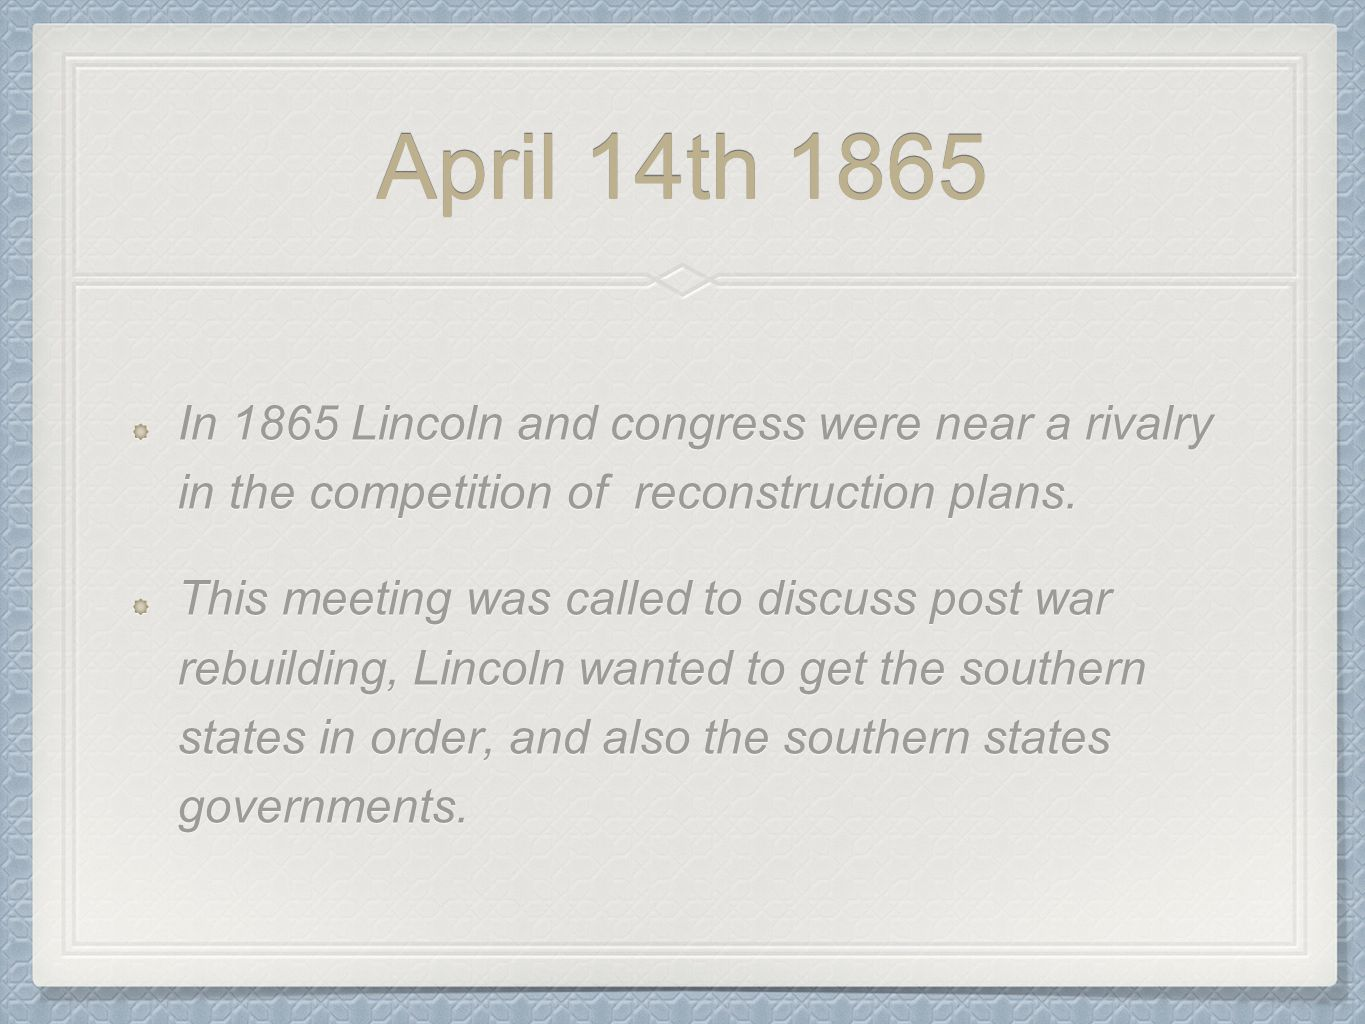 April 14th 1865 In 1865 Lincoln and congress were near a rivalry in the competition of reconstruction plans.